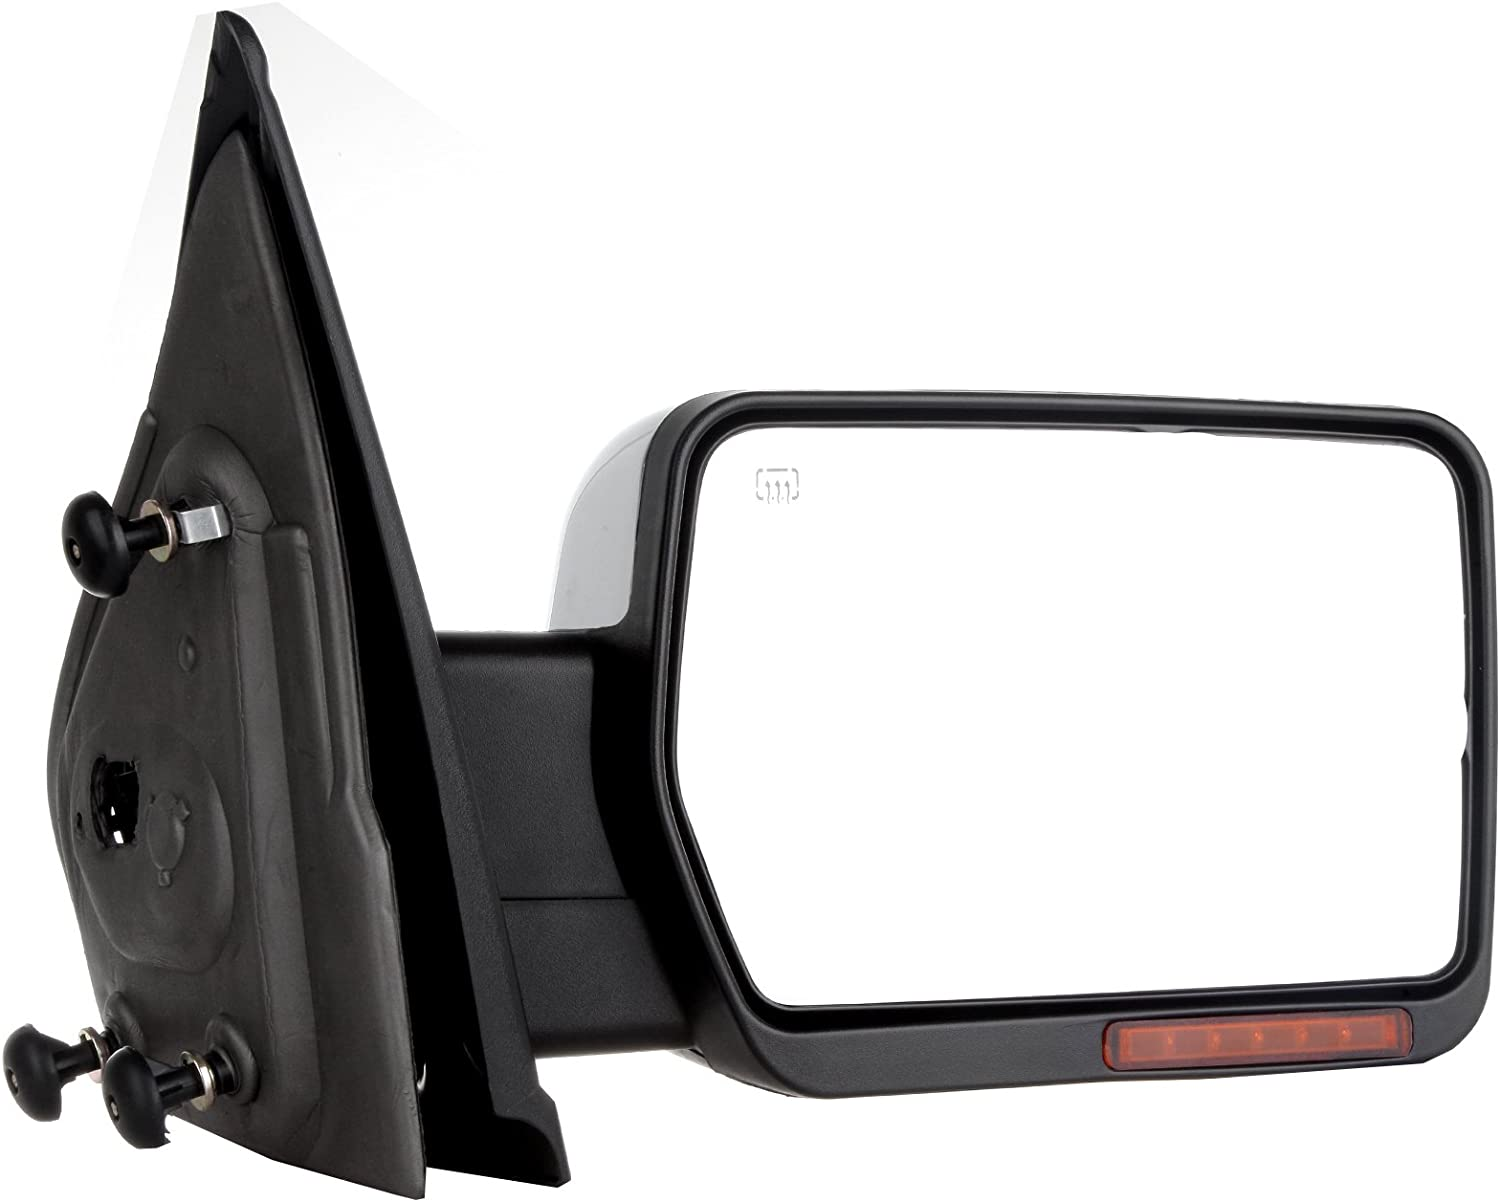 QUALINSIST Tow Mirror Fits for 2004-2014 For Ford F150 Pickup Tr